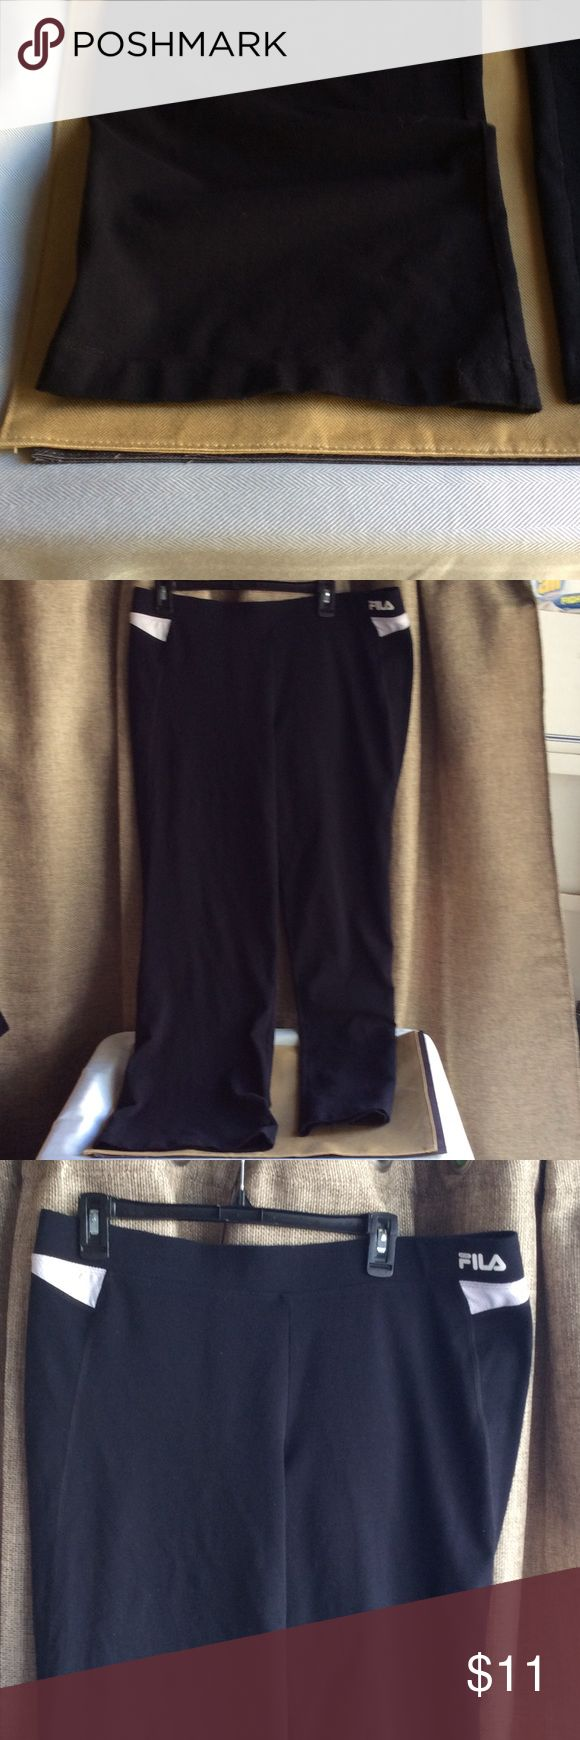 FILA black w/white boot cut yoga pants Sz XL Black yoga pants are wide boot cut at bottom yard FILA. Have white mesh fabric detailing at waist sides. Are 55 cotton/38 poly/8 spandex. Are not brand new, customer returned to obtain straight ankle fit instead. Great condition! Pants Wide Leg